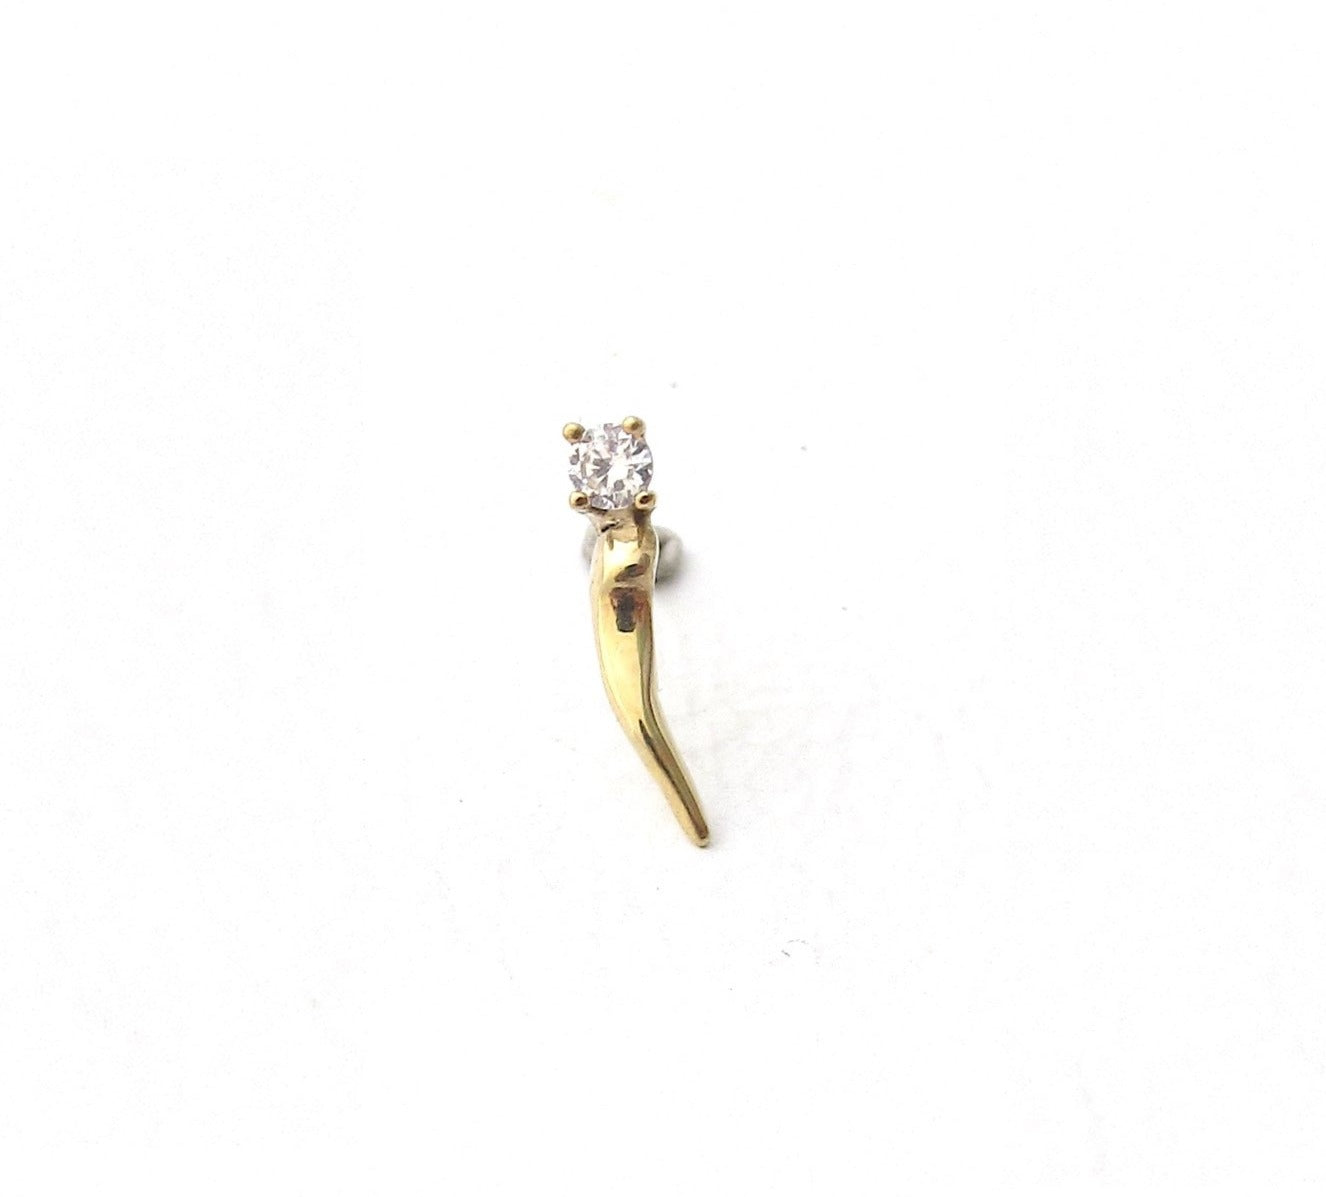 Thorn diamond stud earring